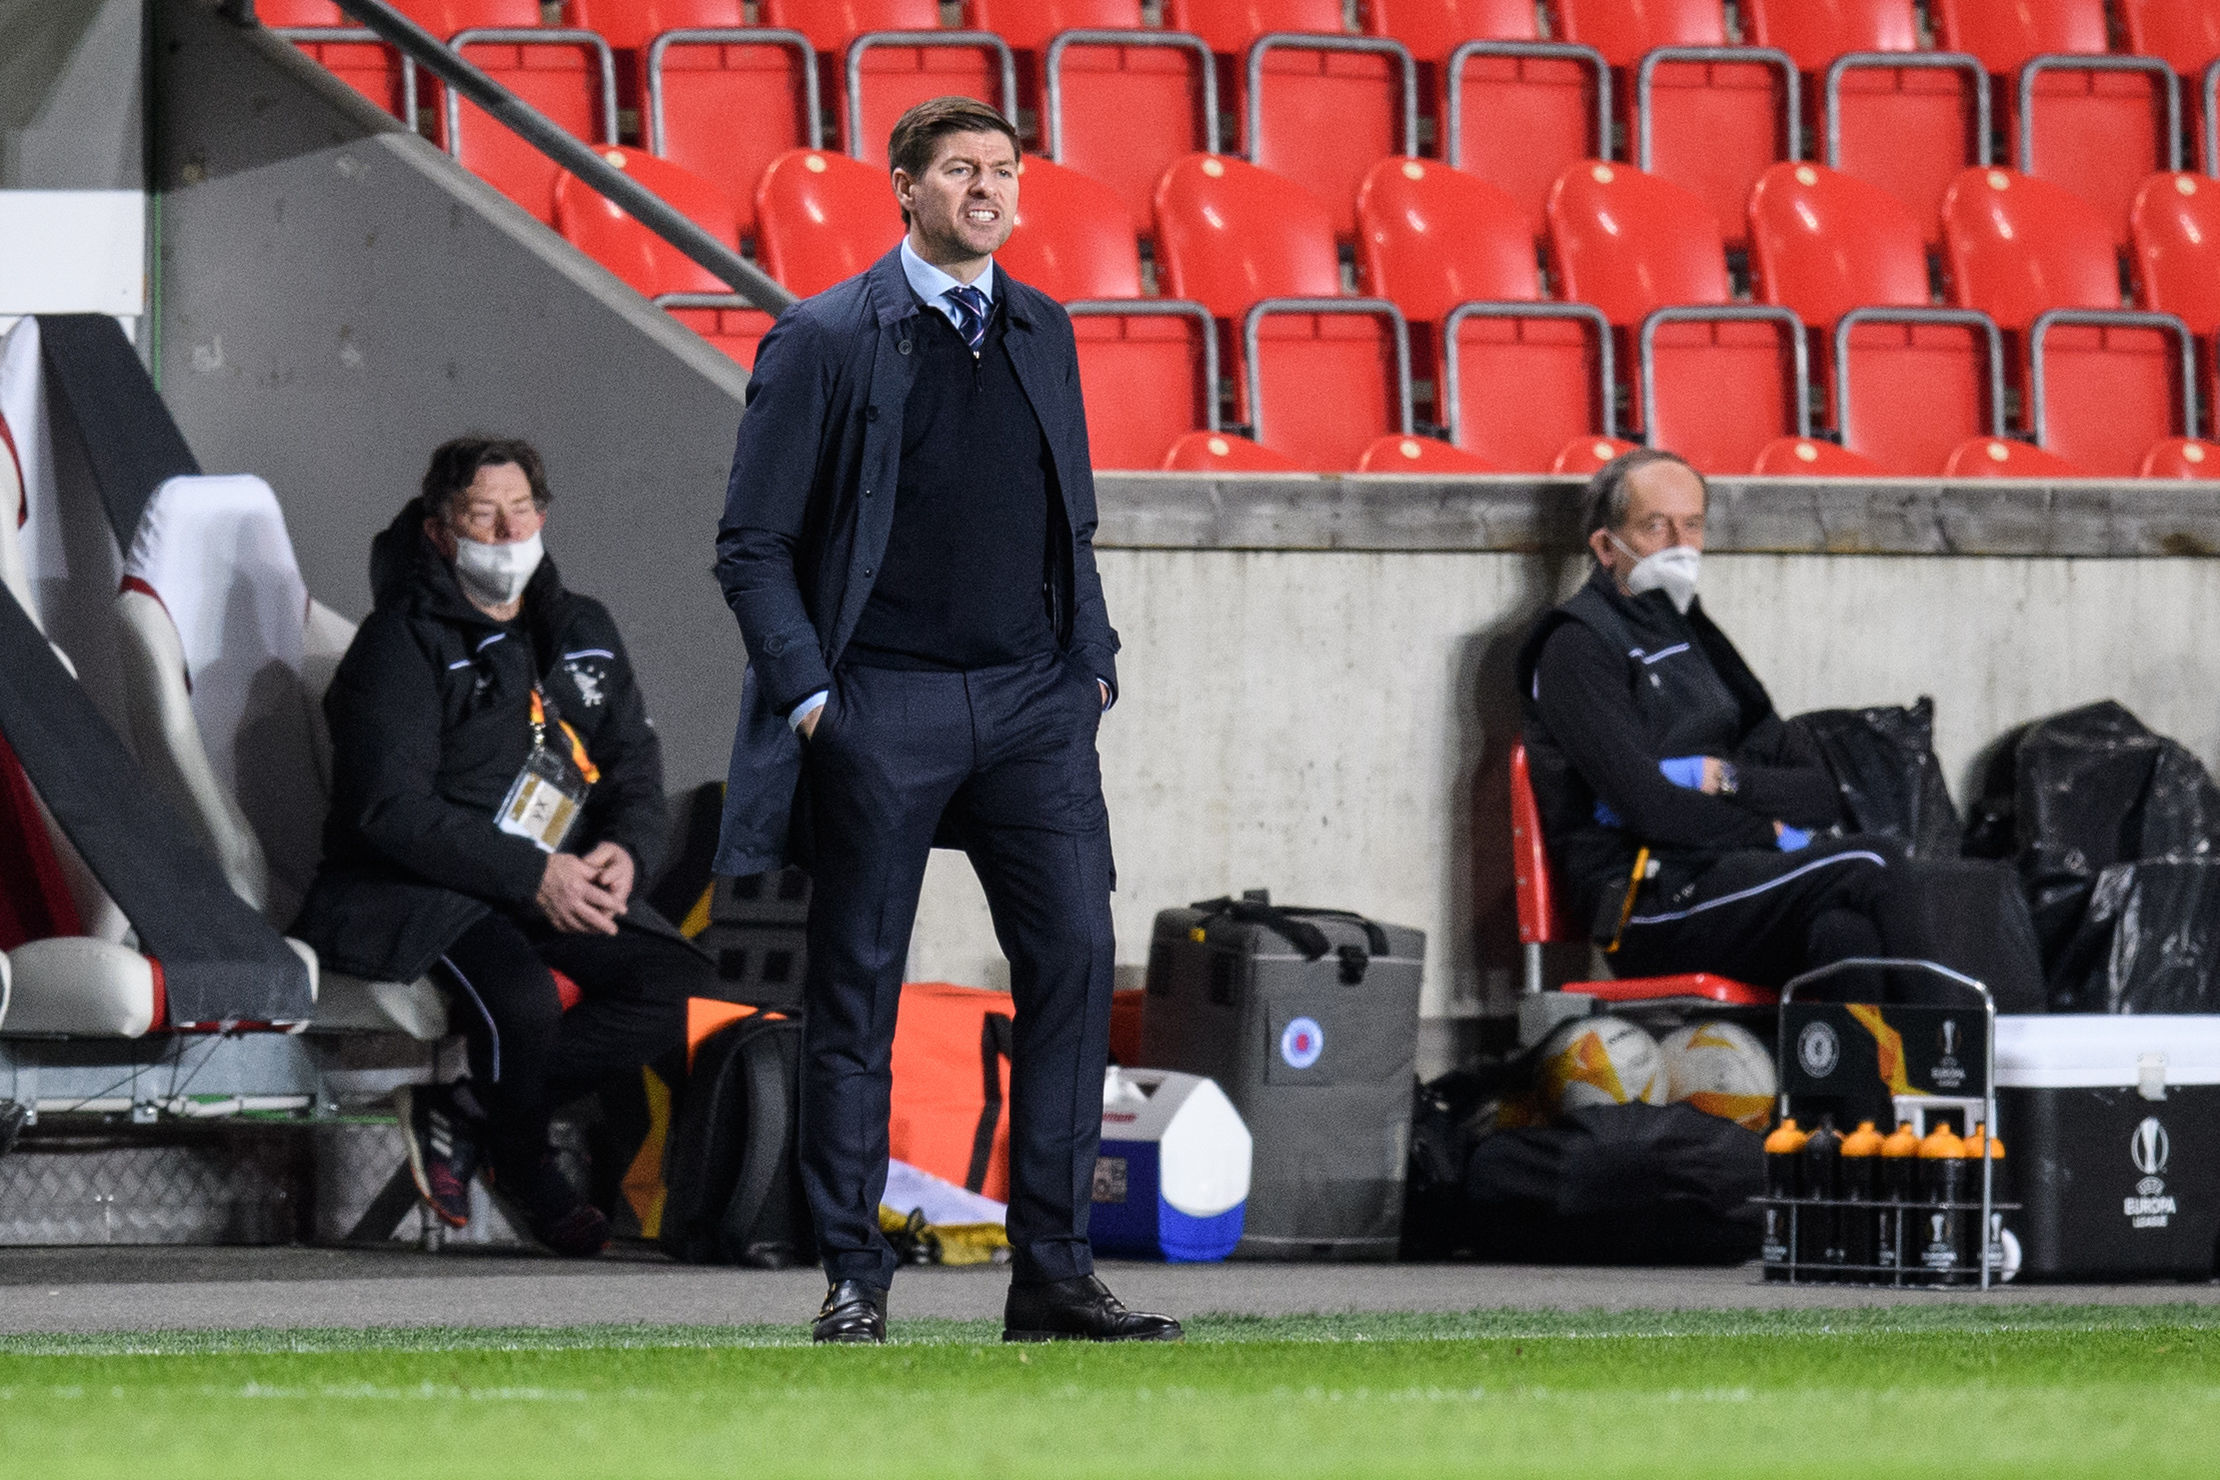 Steven Gerrard's message to Rangers stars awaiting Ibrox contract talks this term